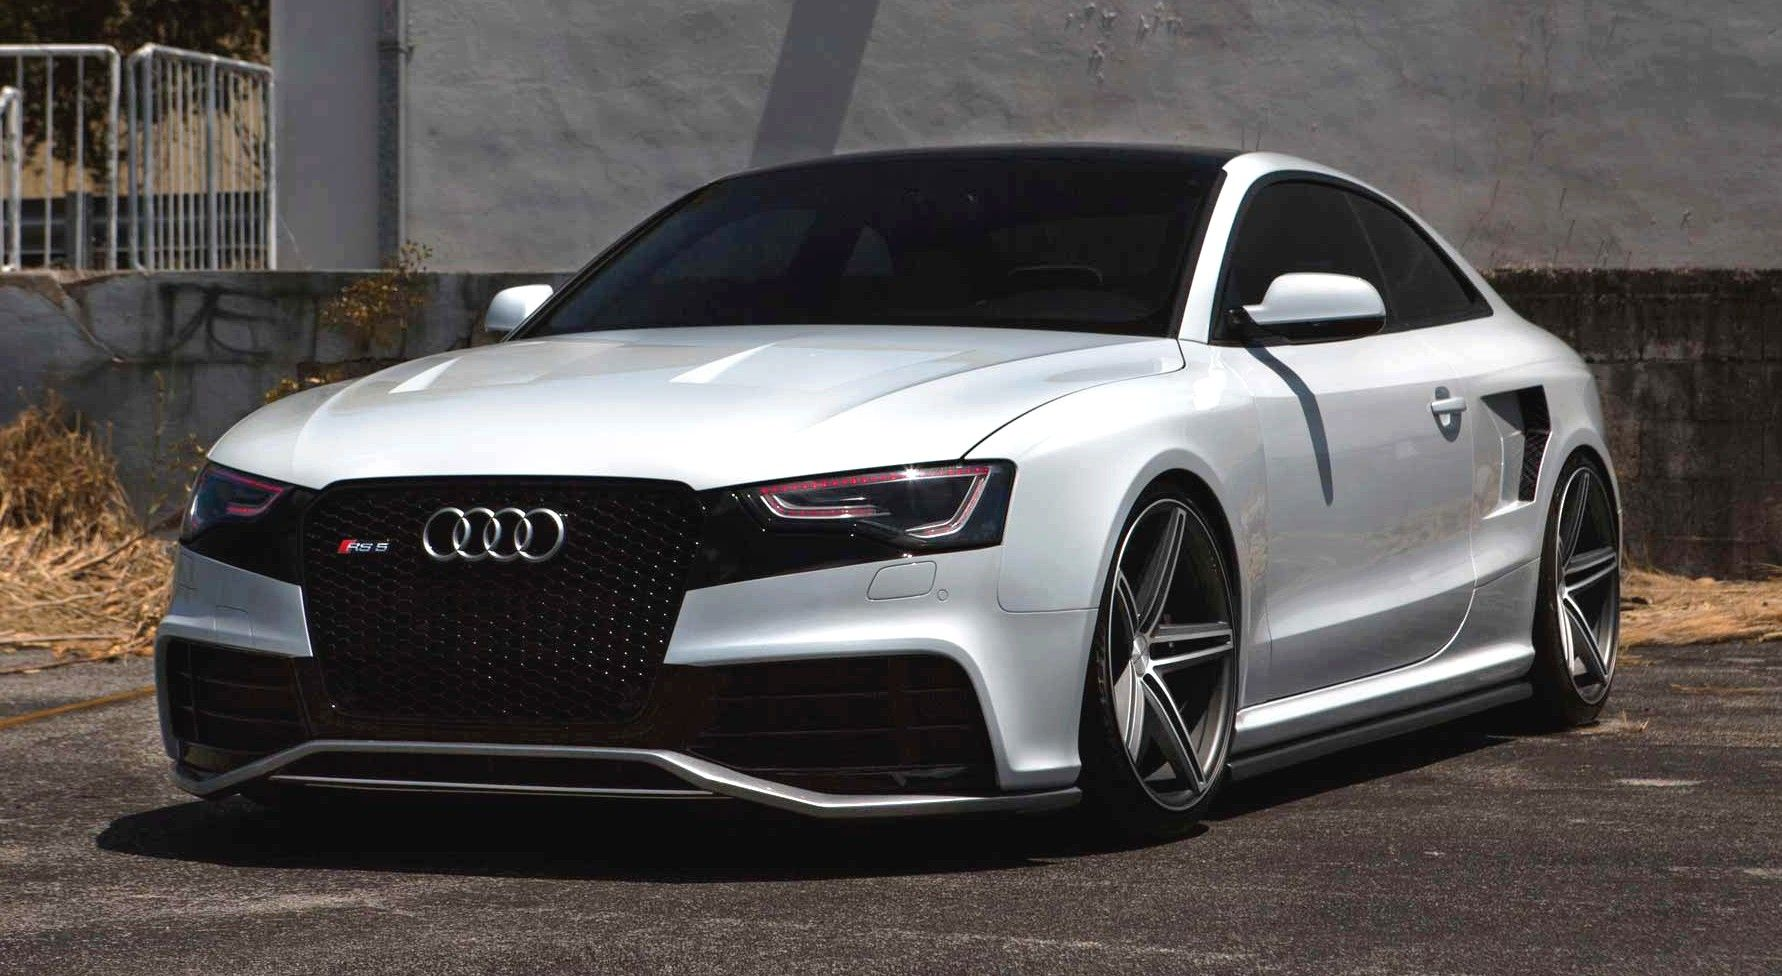 angry audi rs5 on vossen wheels wheelporn wheels tuning. Black Bedroom Furniture Sets. Home Design Ideas